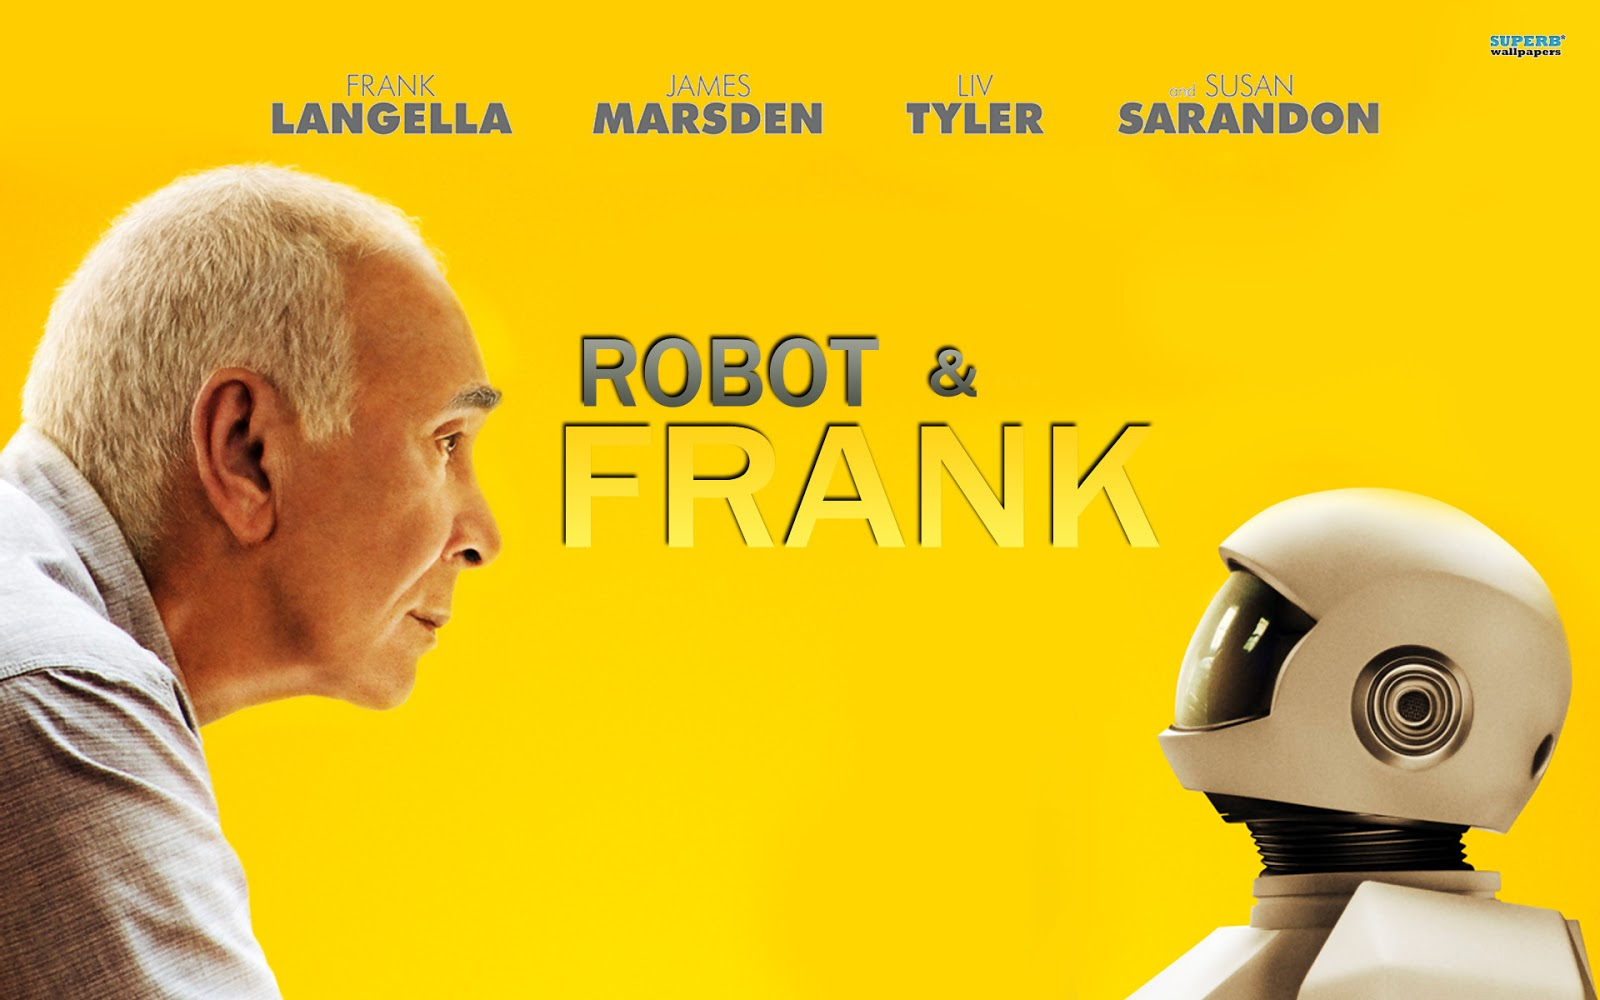 frank and robot